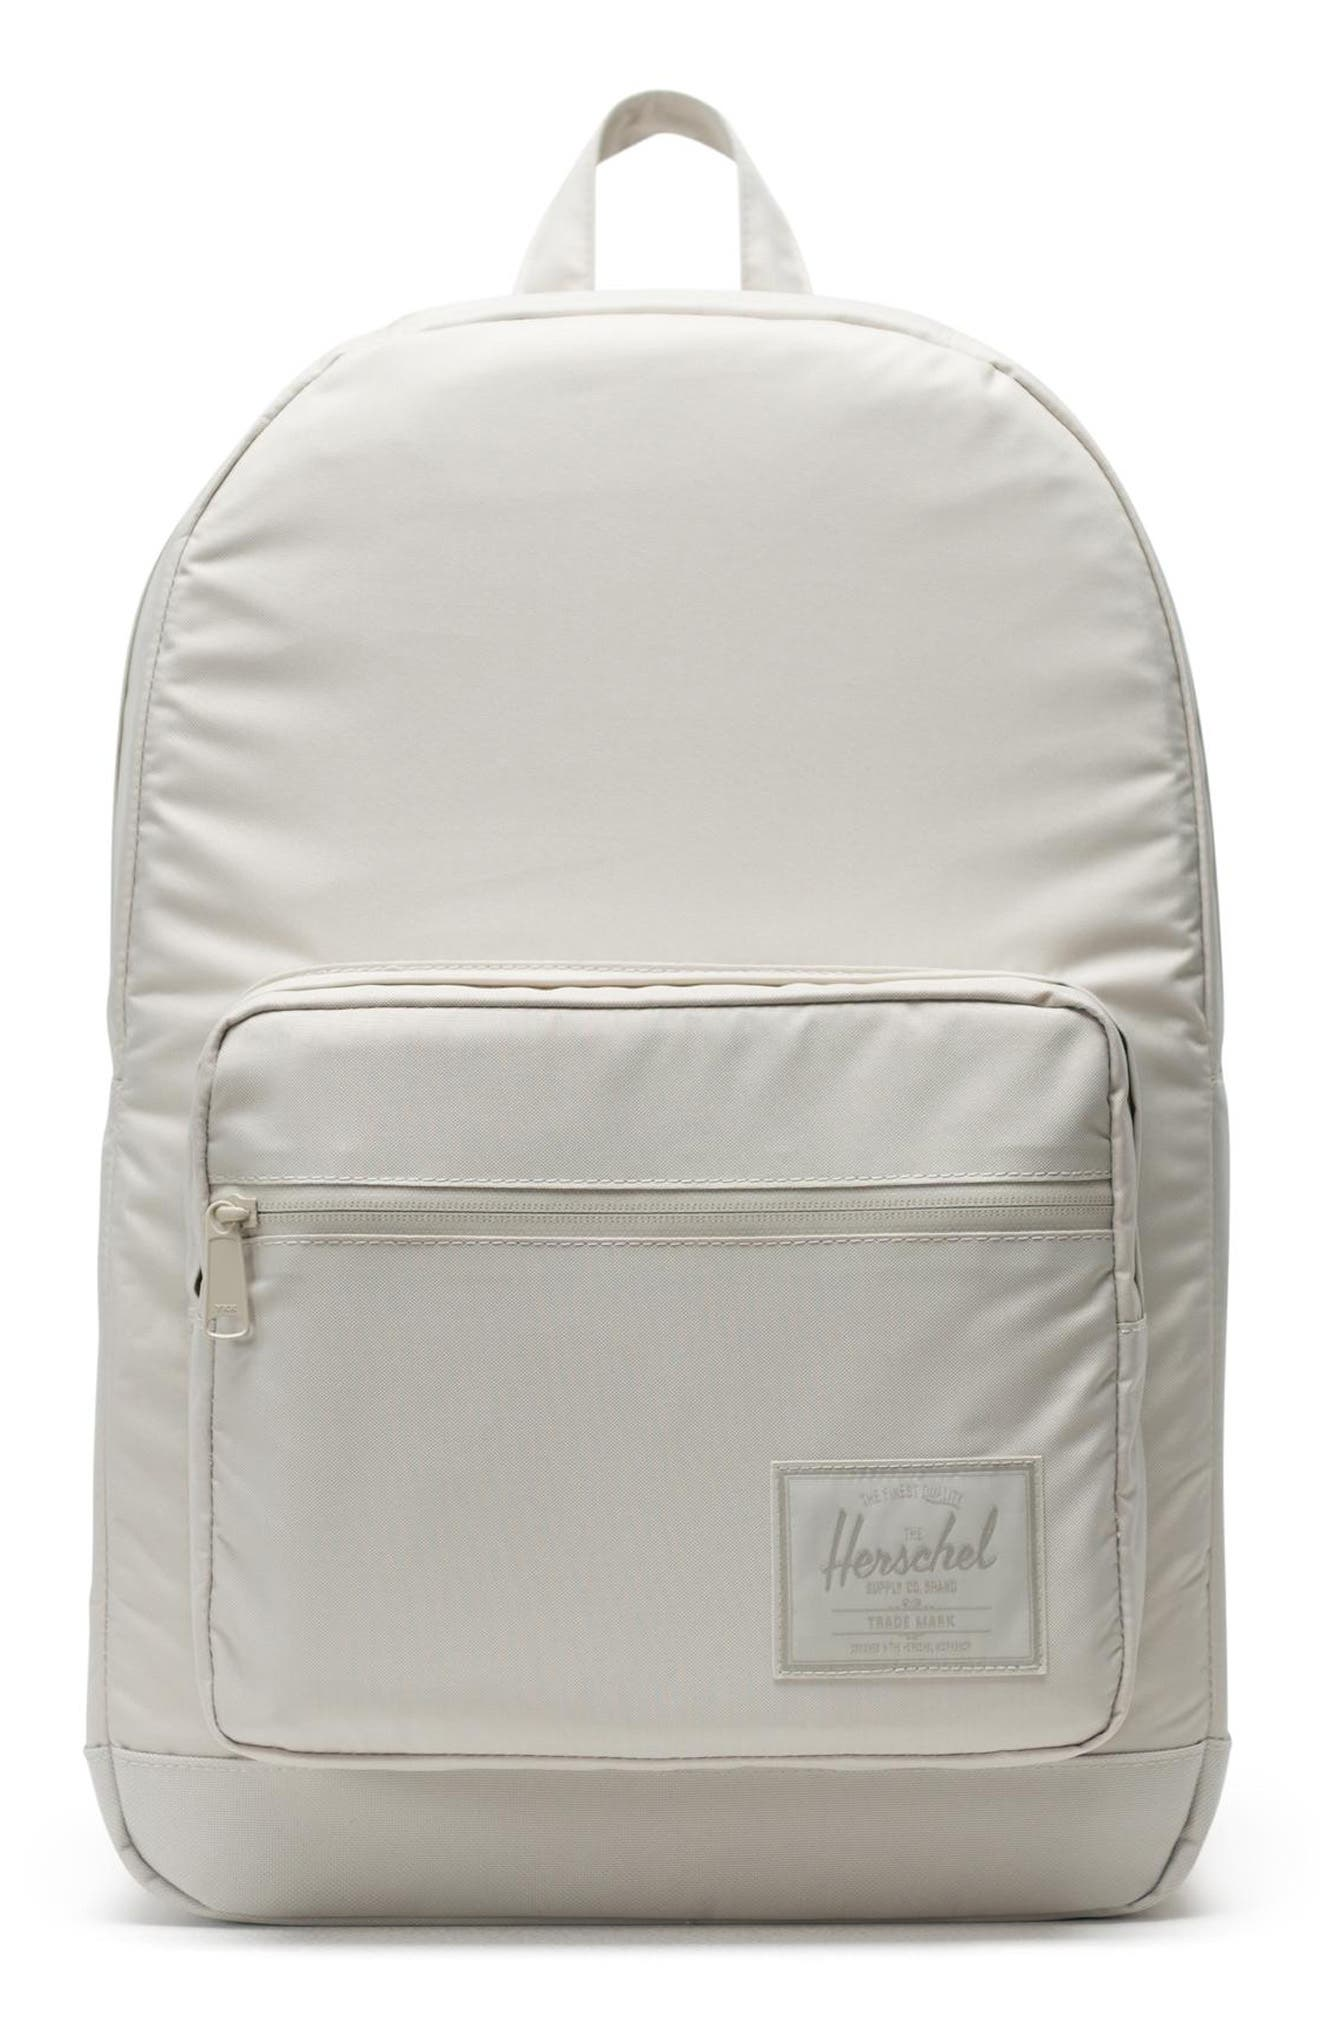 Herschel Supply Co. Pop Quiz Light Backpack - Grey